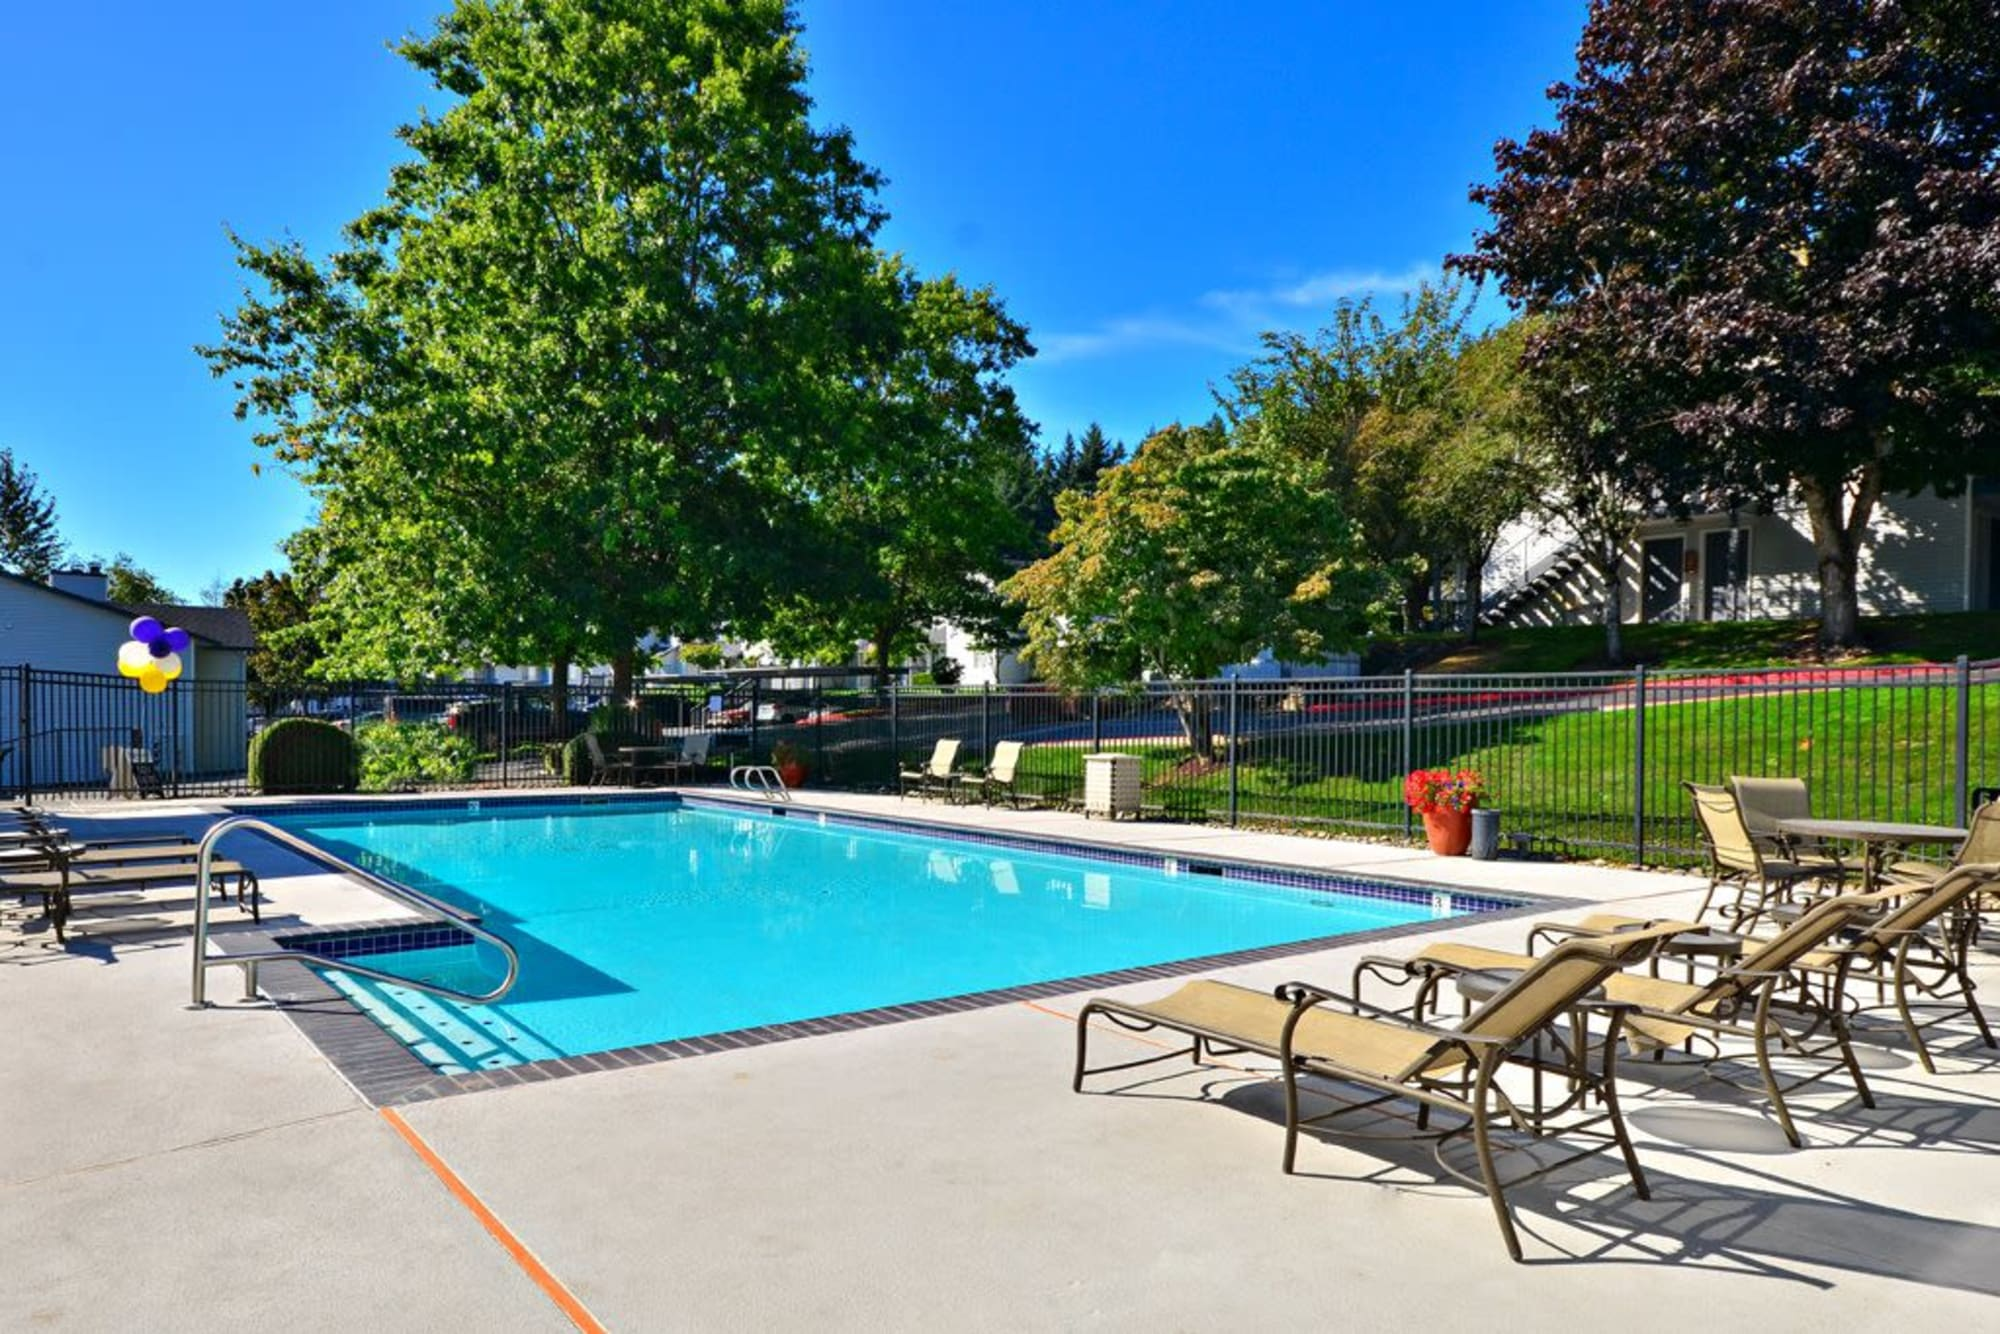 The inviting bright blue swimming pool at Wellington Apartment Homes in Silverdale, Washington